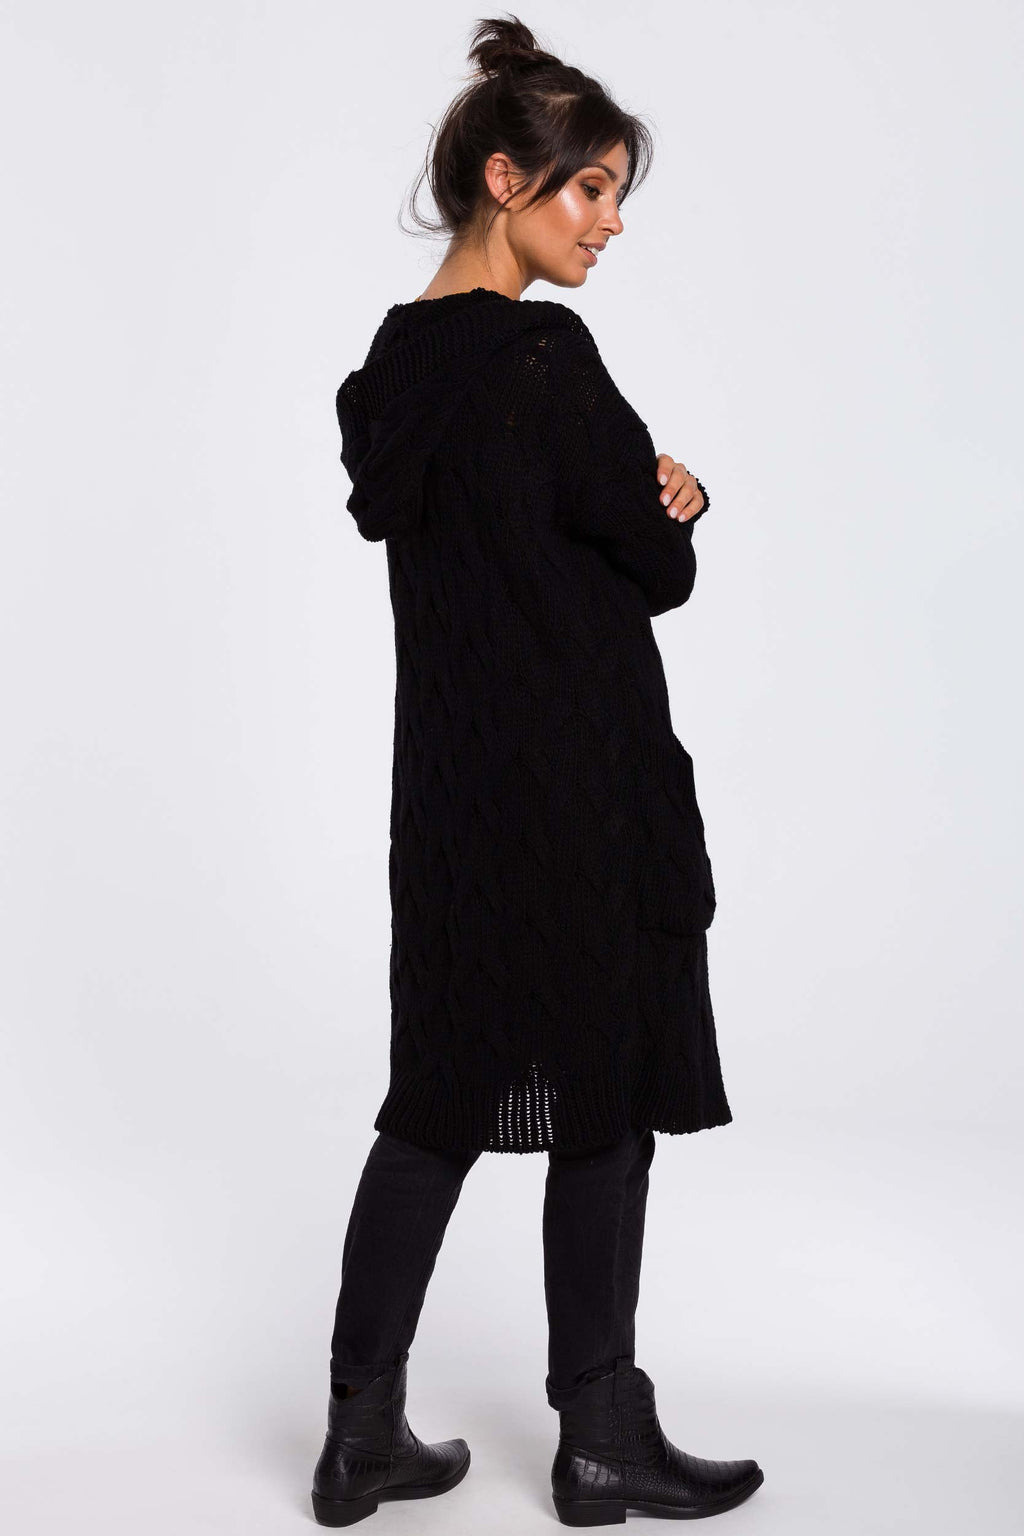 Black Long Plaited Hood Cardigan With Patch Pockets - So Chic Boutique